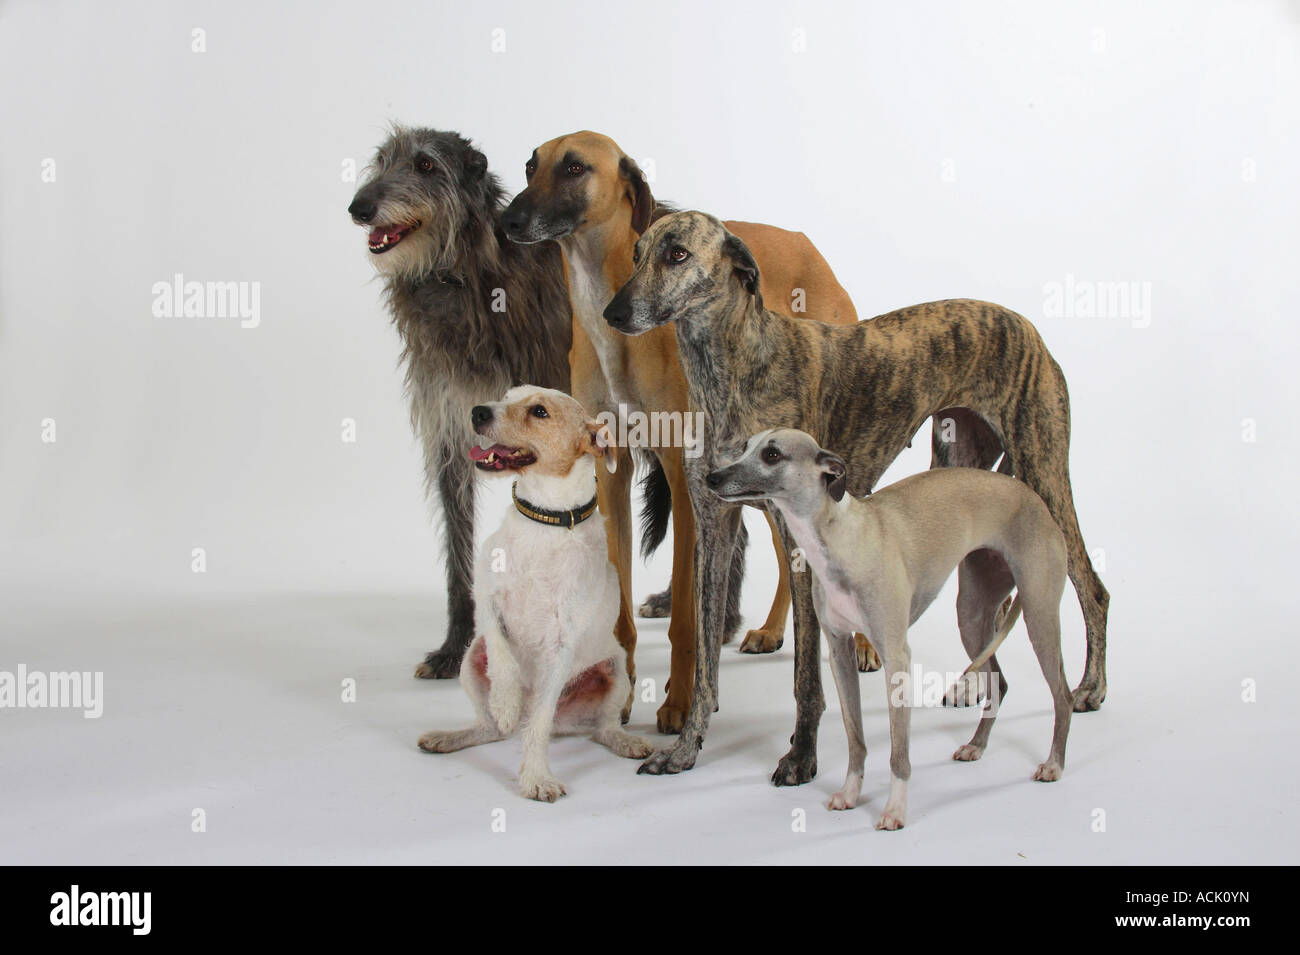 Sloughis Scottish Deerhound Whippet and Parson Russell Terrier Stock Photo